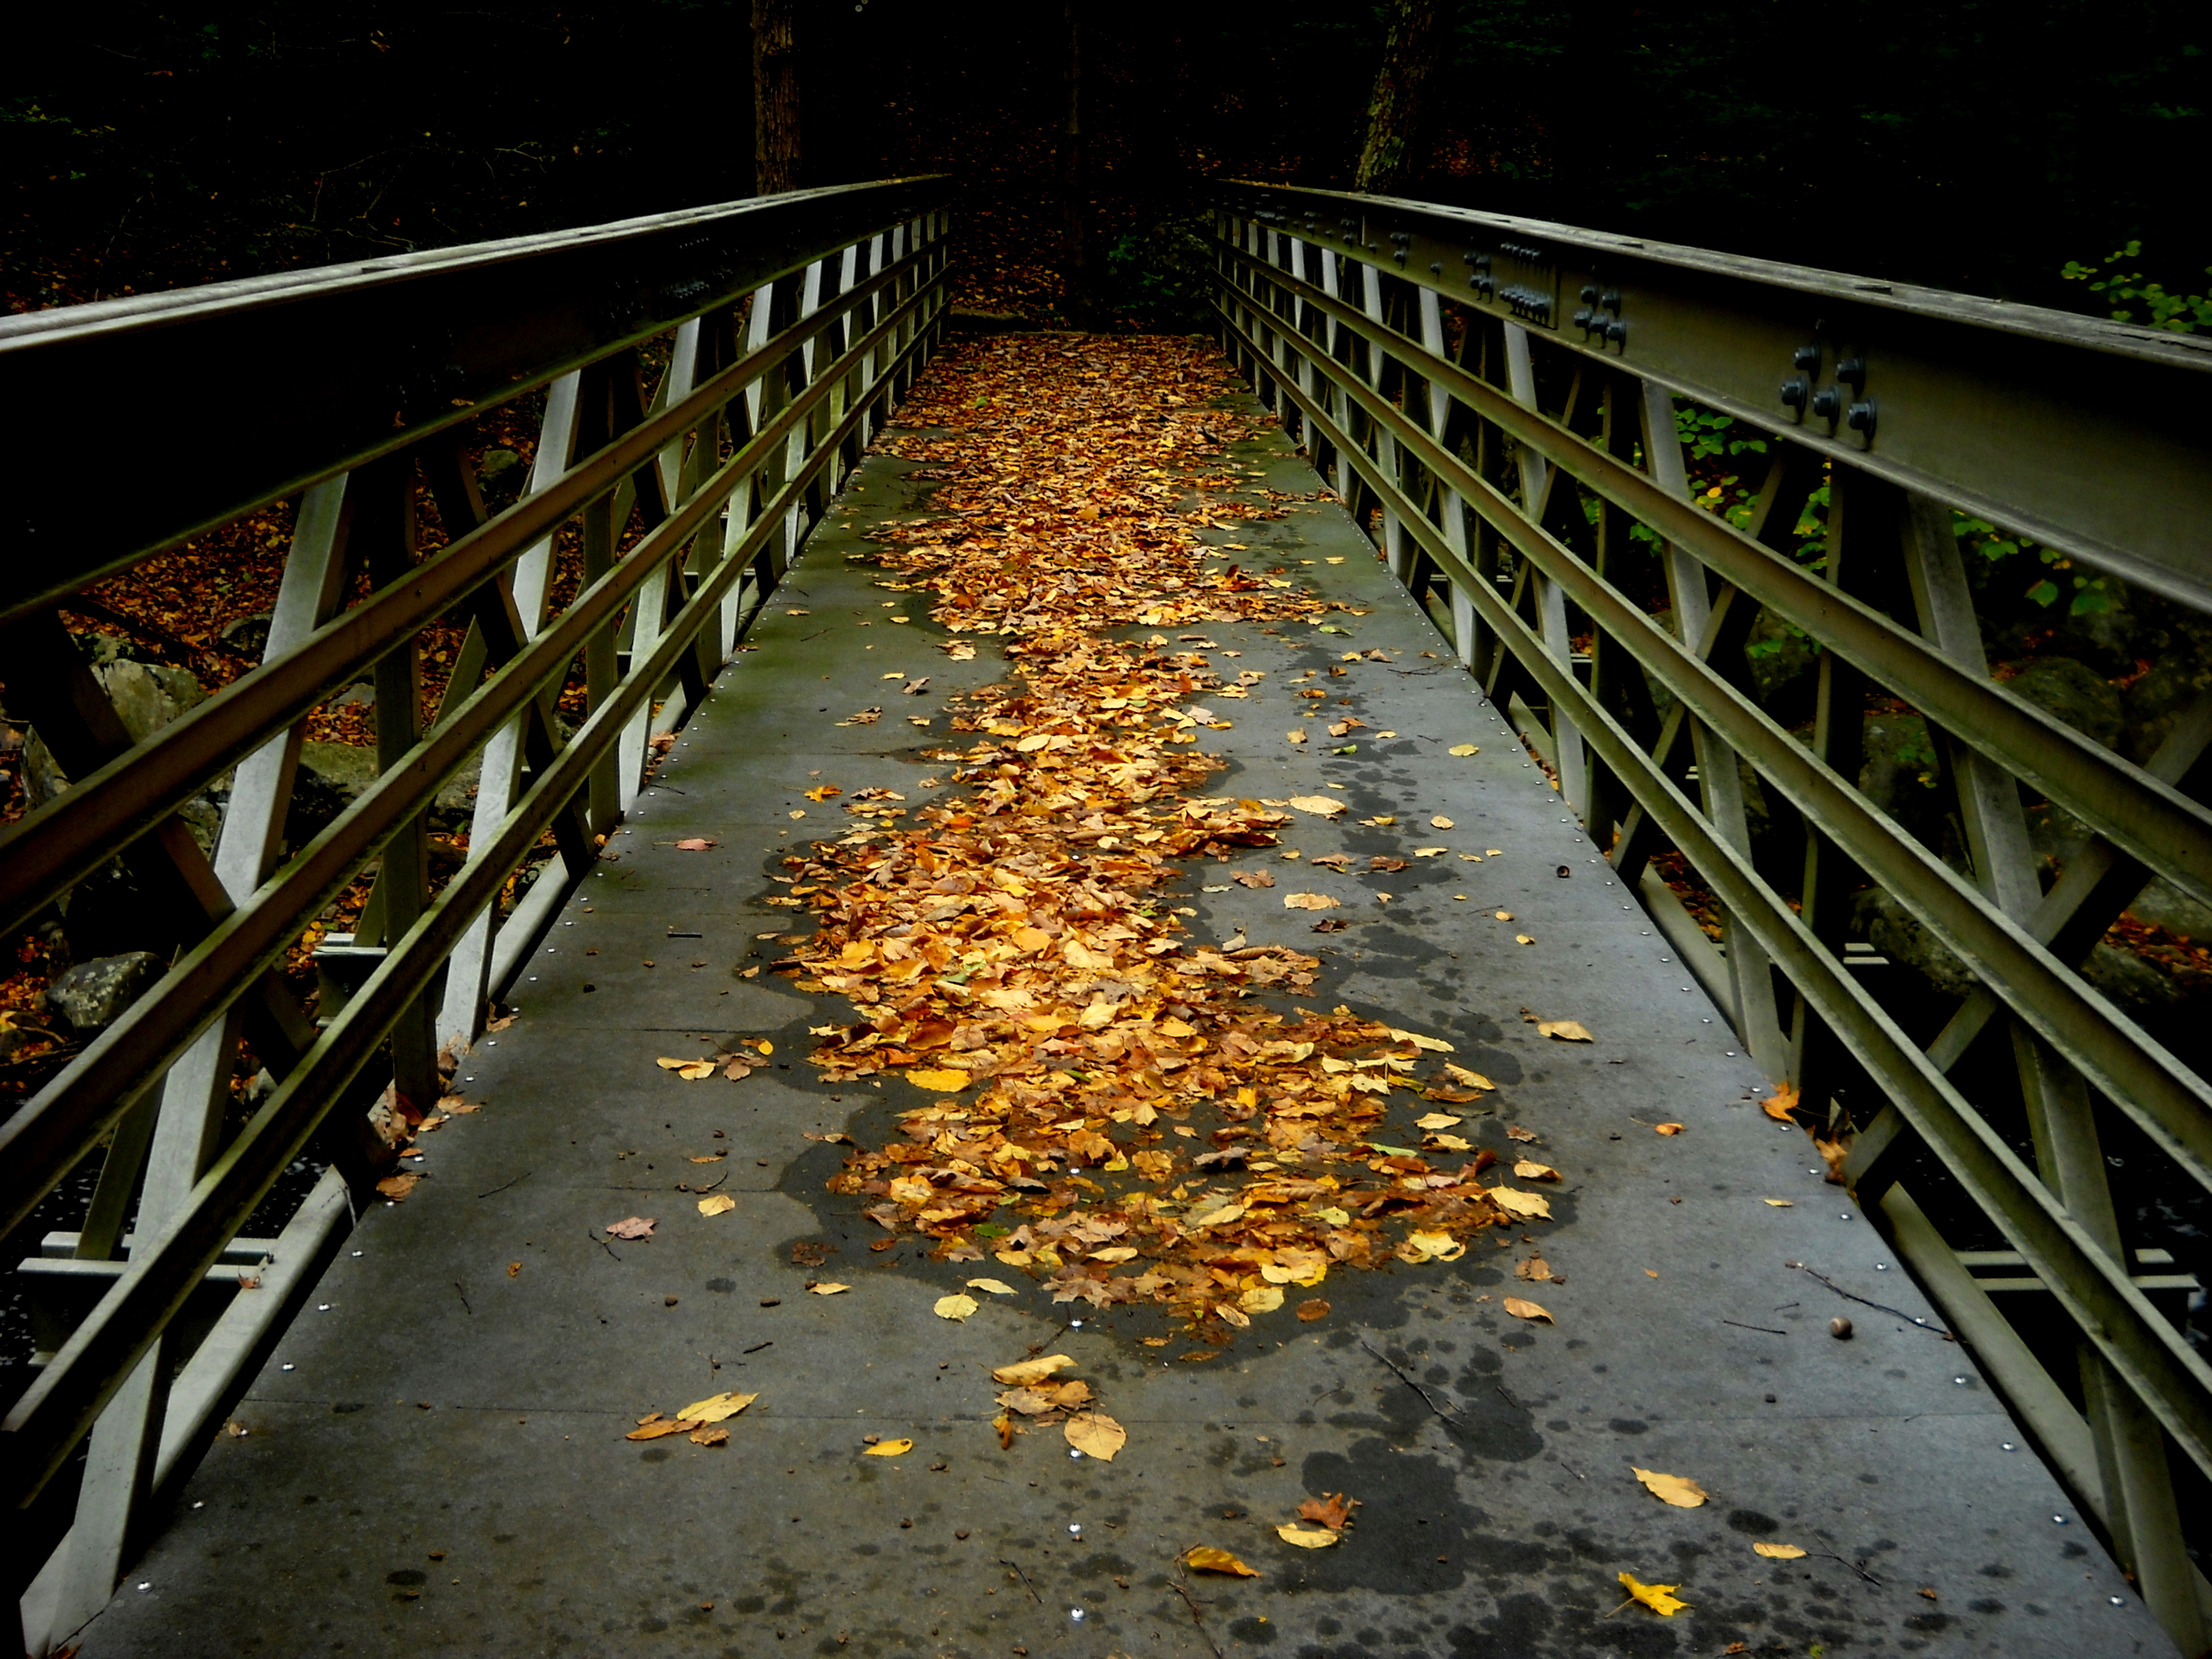 The Bridge, Bridge, Leaves, HQ Photo